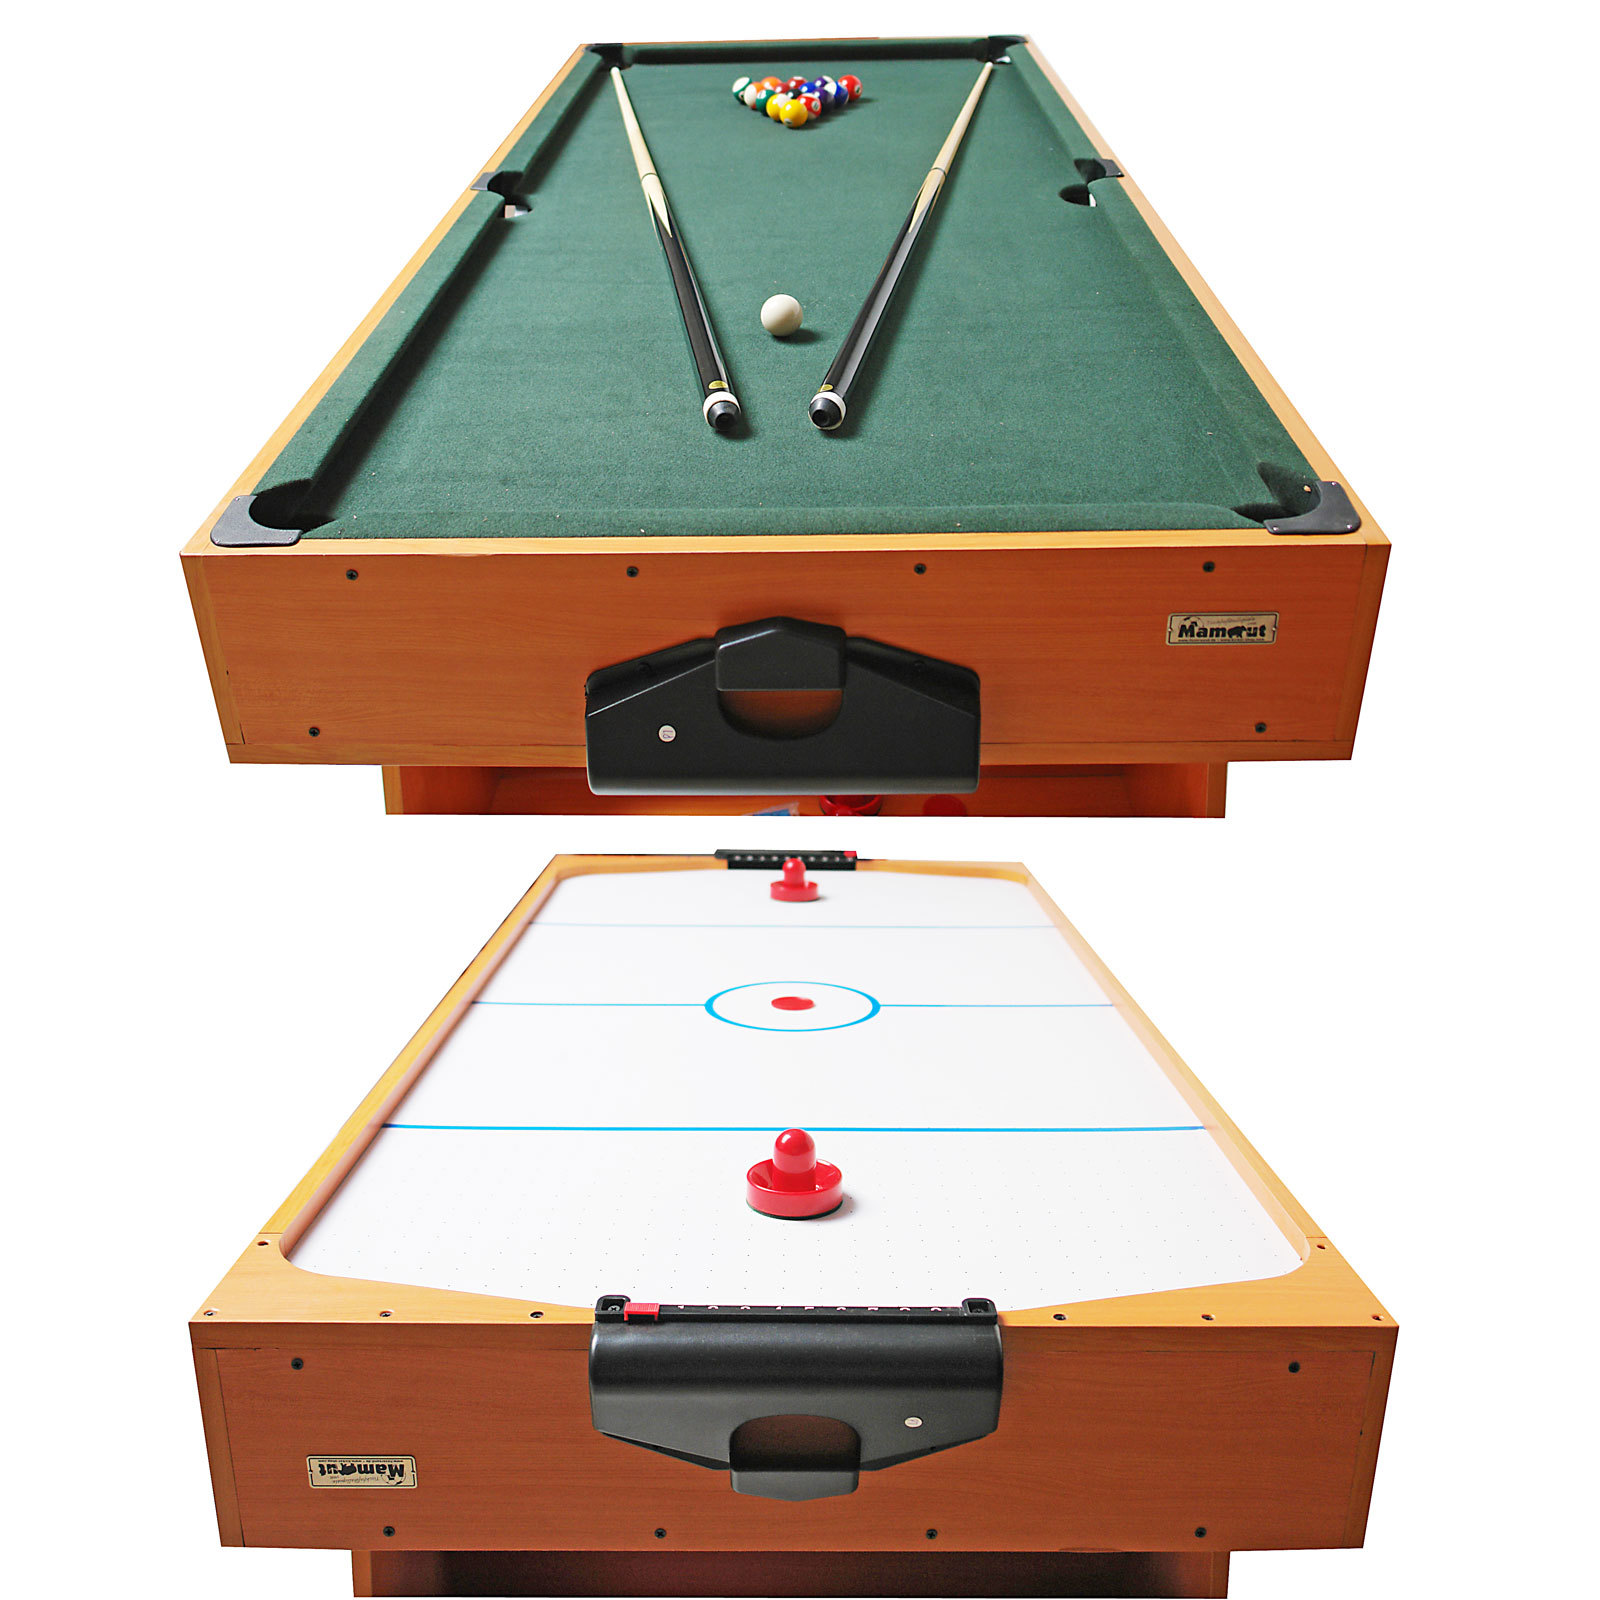 billardtisch billard airhockey tisch 2 in 1 kombi tisch spieltisch spiele ebay. Black Bedroom Furniture Sets. Home Design Ideas